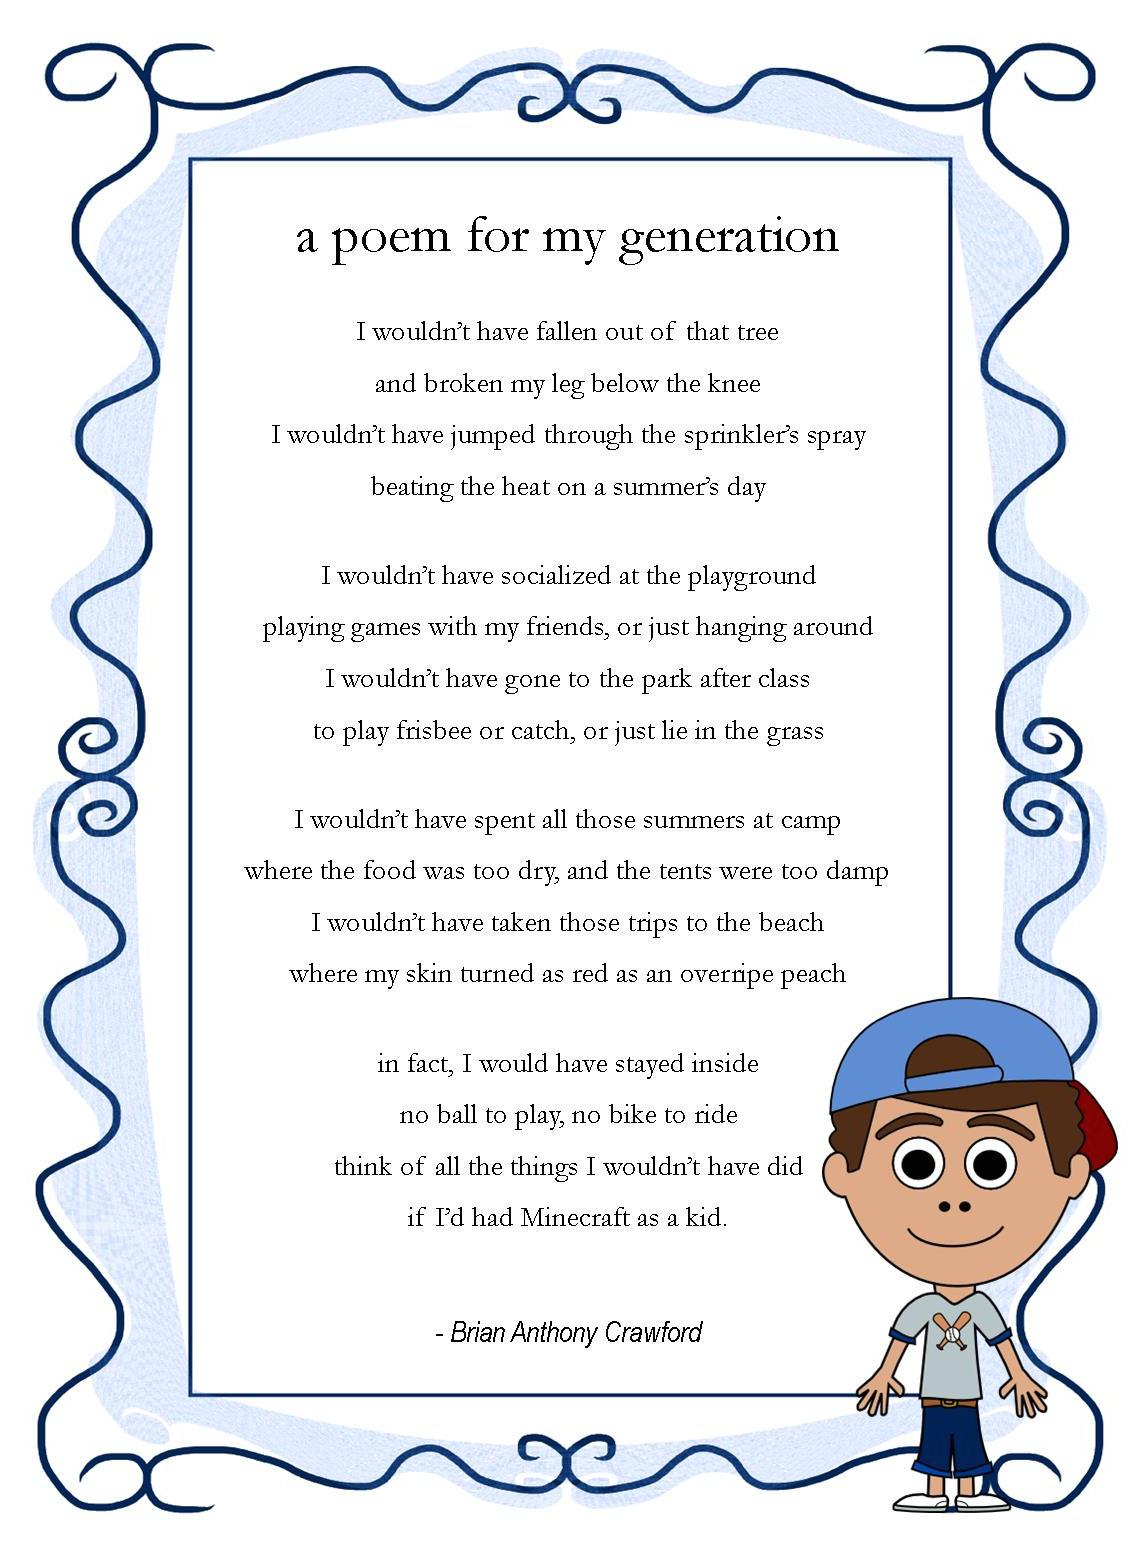 A poem for my generation